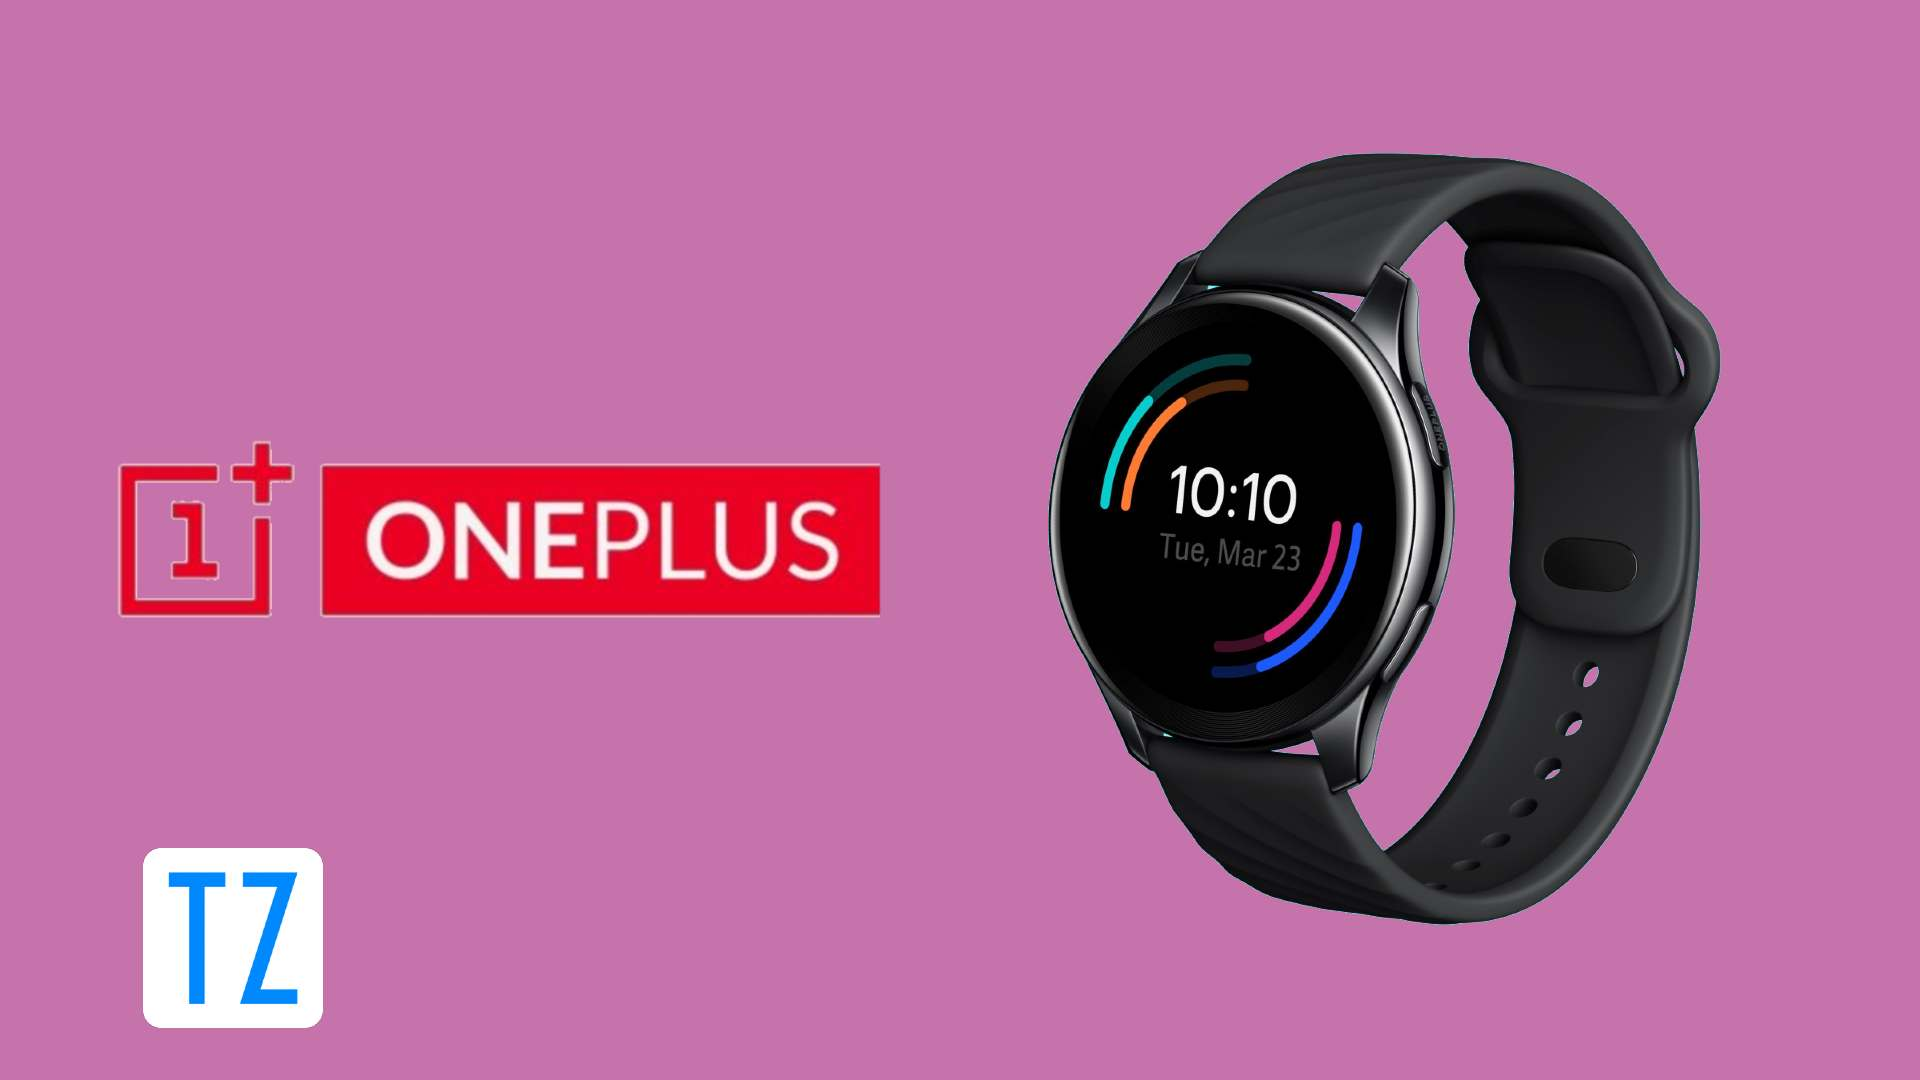 nePlus Company confirmed that Watch is Launching on March 23